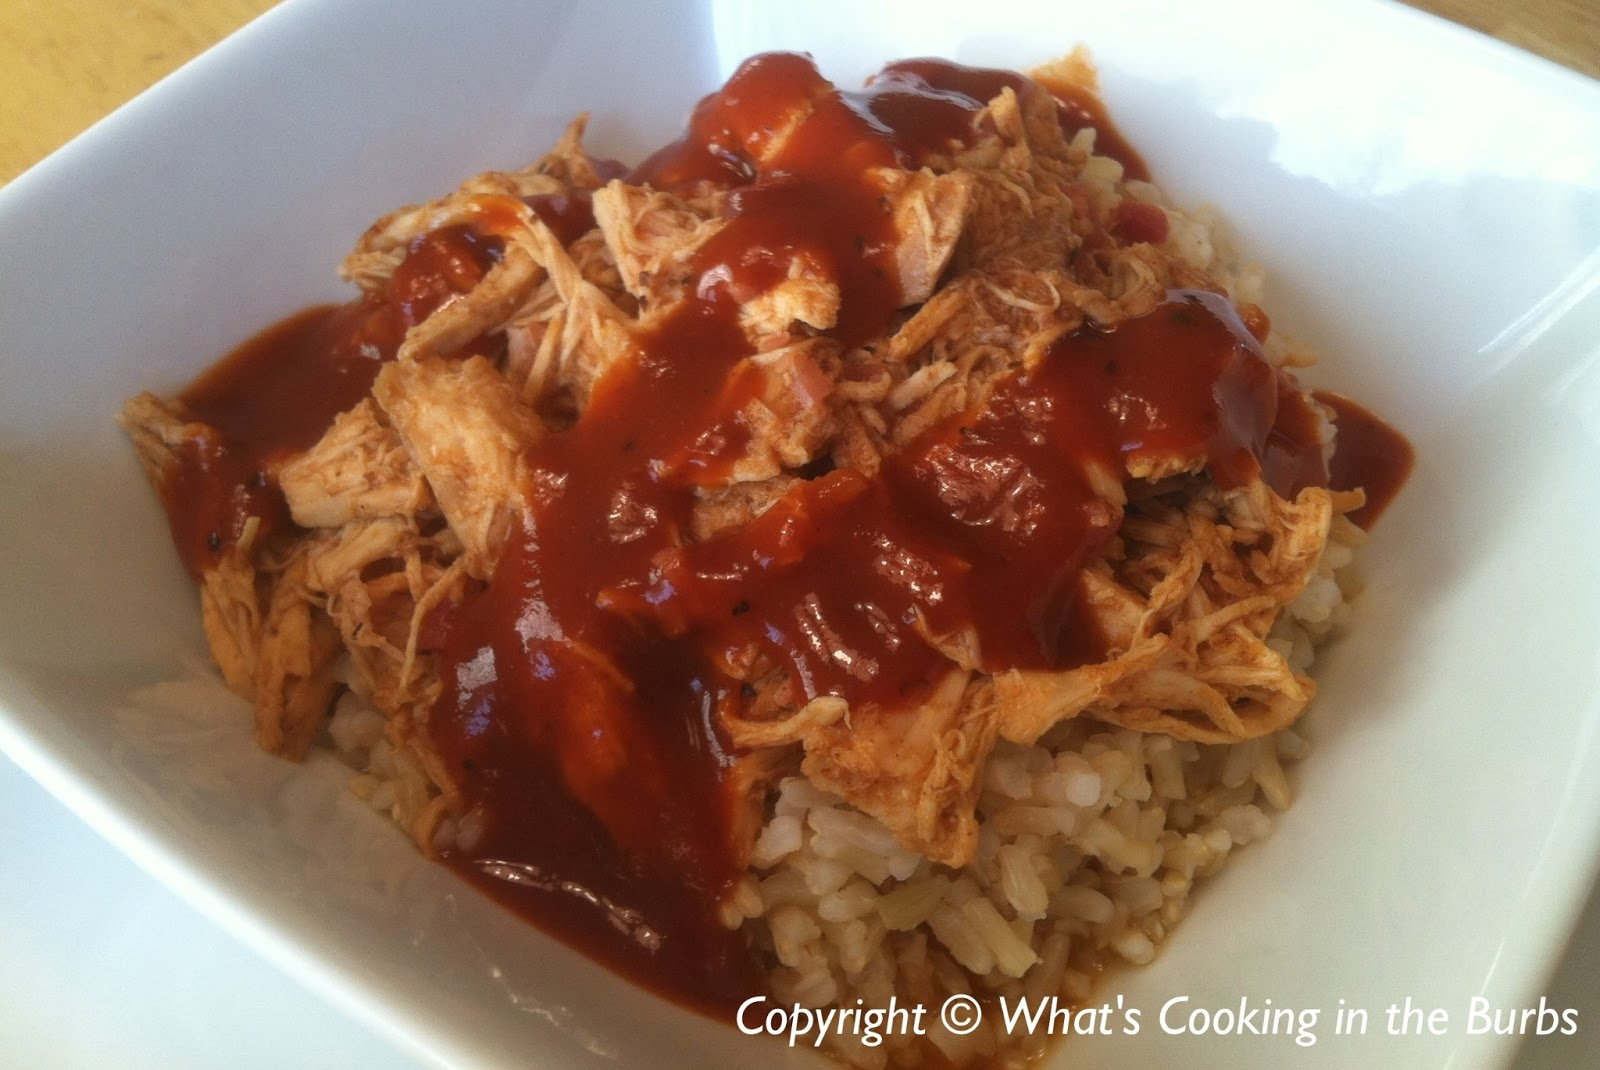 What's Cooking in the Burbs: Crock Pot Cherry Coke Chicken